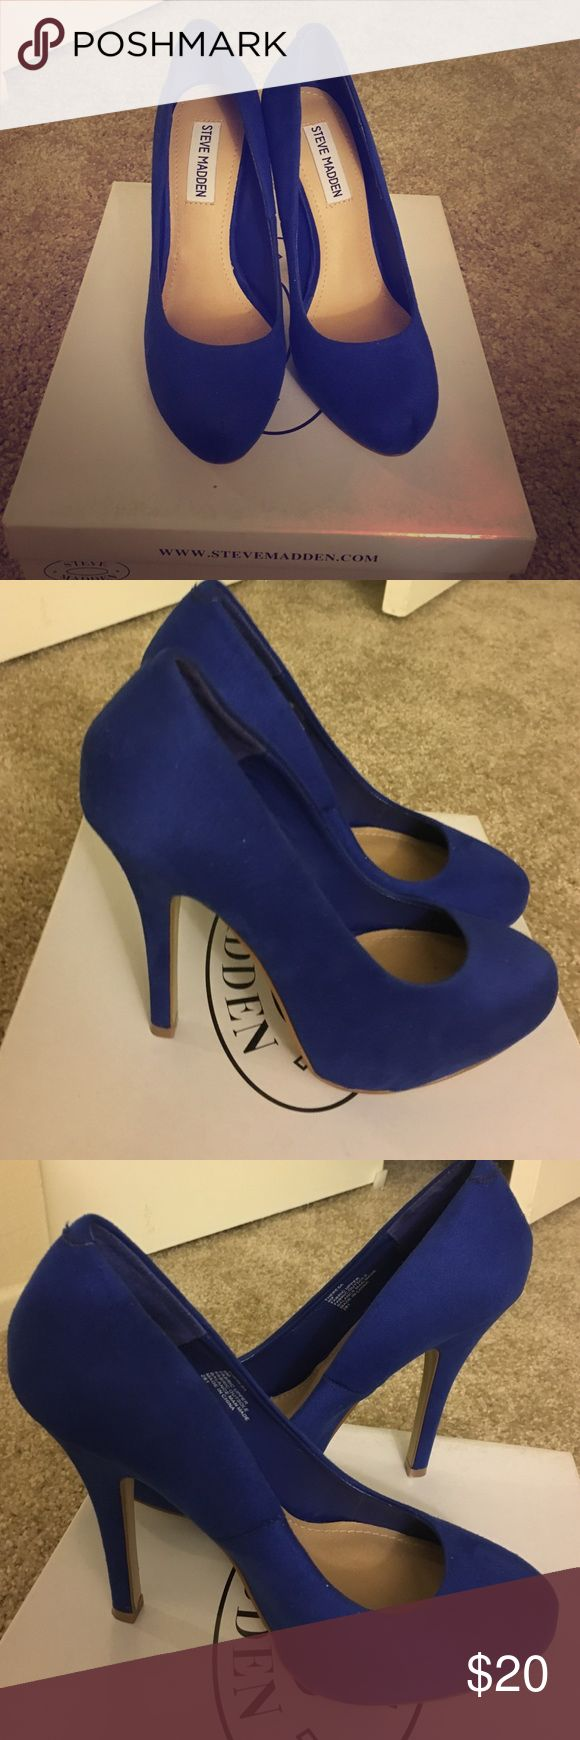 Steve Madden royal blue pumps size 6 Fabric upper, true to size, royal blue Steve Madden pumps size 6. Worn once, sold as is, clean upper no scratches. Steve Madden Shoes Heels